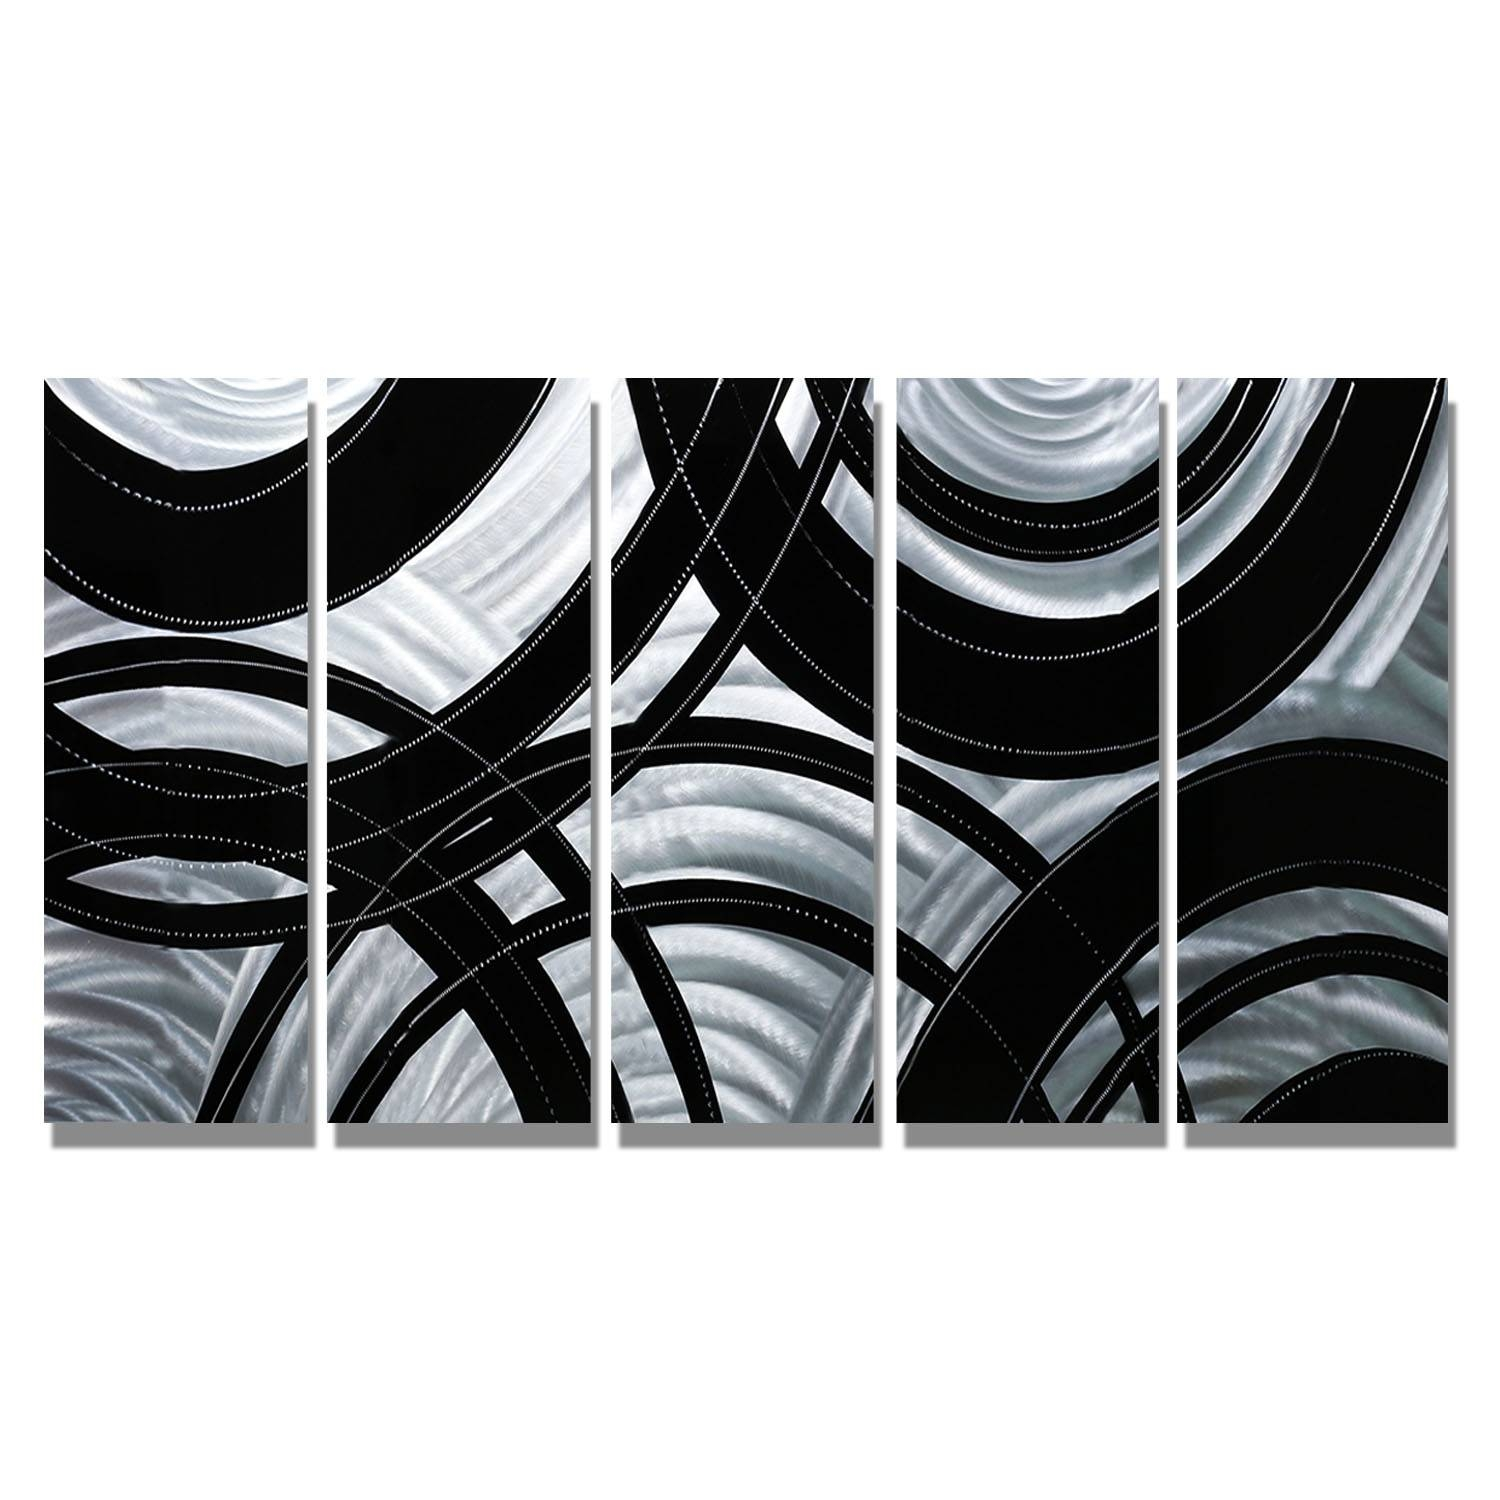 Synergy – Black And Silver Metal Wall Art – 5 Panel Wall Décor With Regard To Latest Black And Silver Metal Wall Art (View 11 of 20)